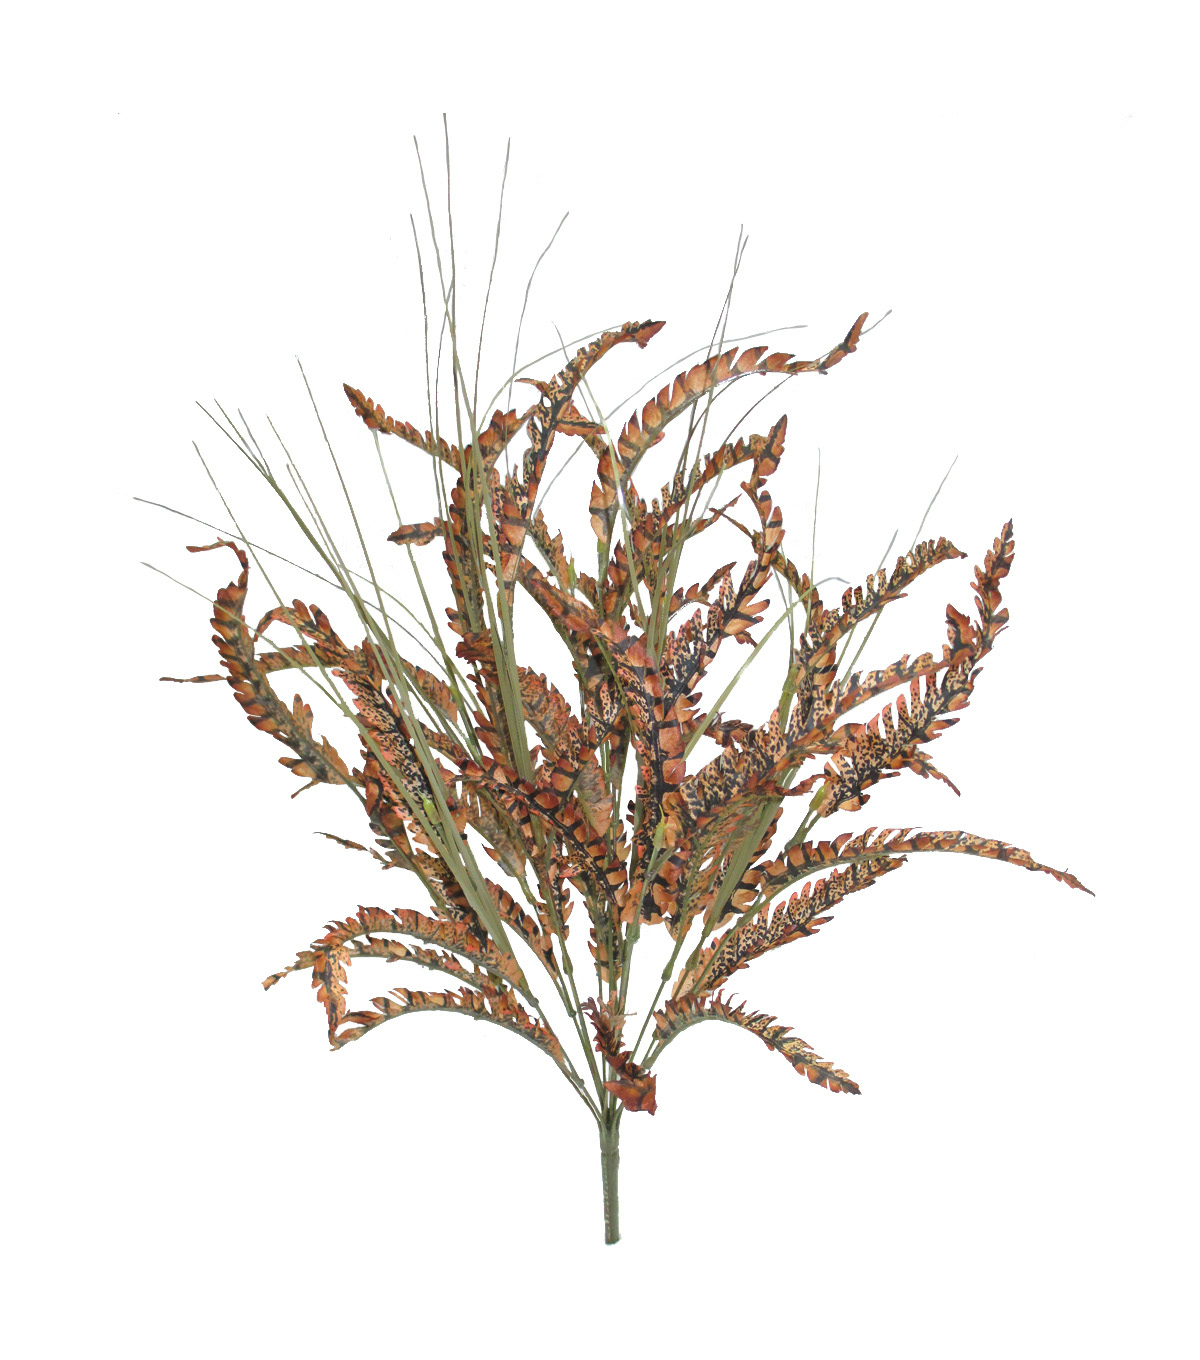 Blooming Autumn 23'' Feather & Onion Grass Bush-Brown